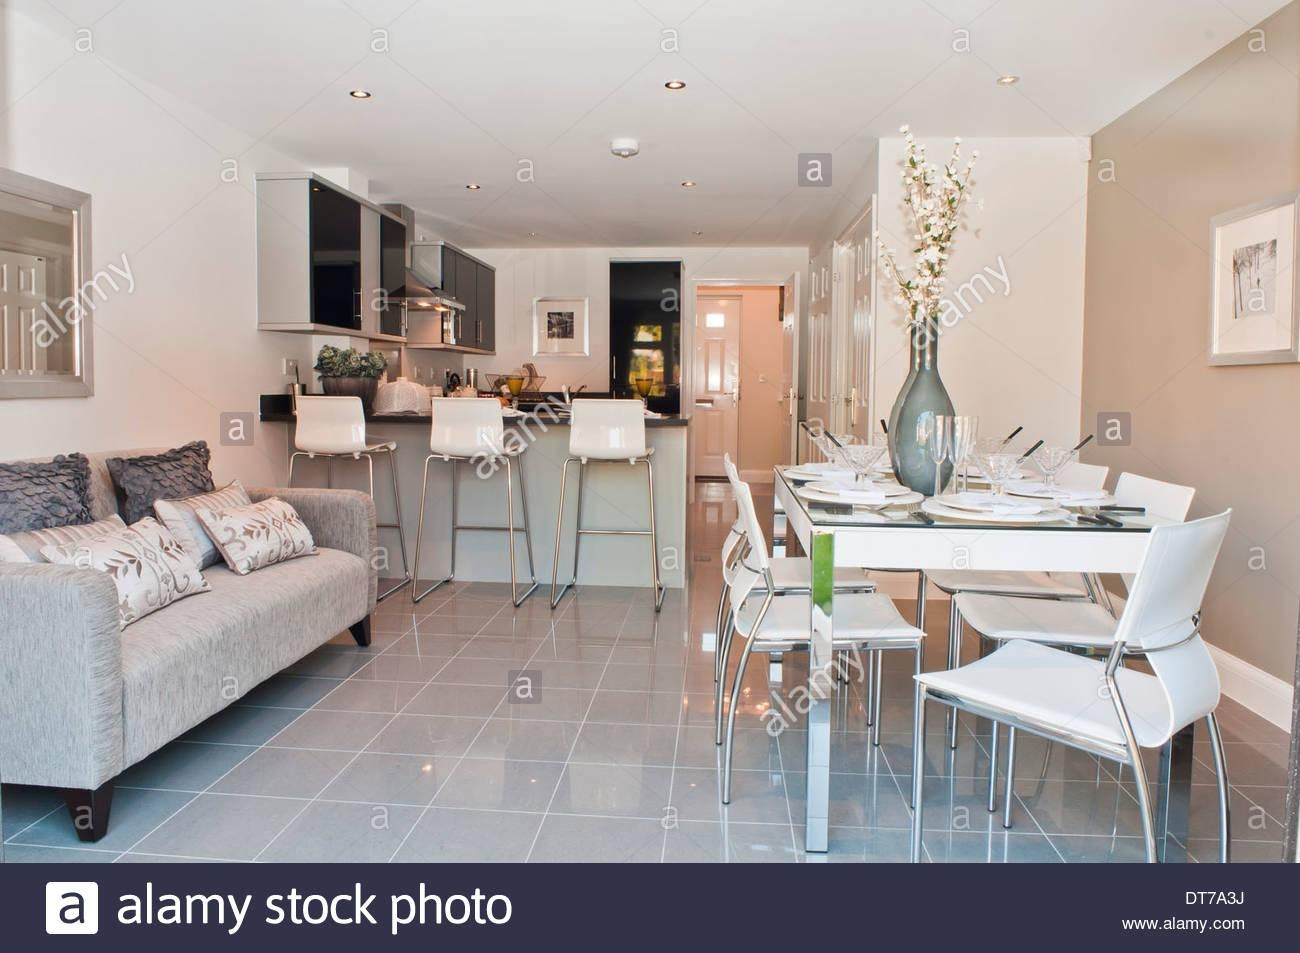 Show Home Kitchen / Diner With Sofa Stock Photo, Royalty Free With Sofas For Kitchen Diner (Image 19 of 21)